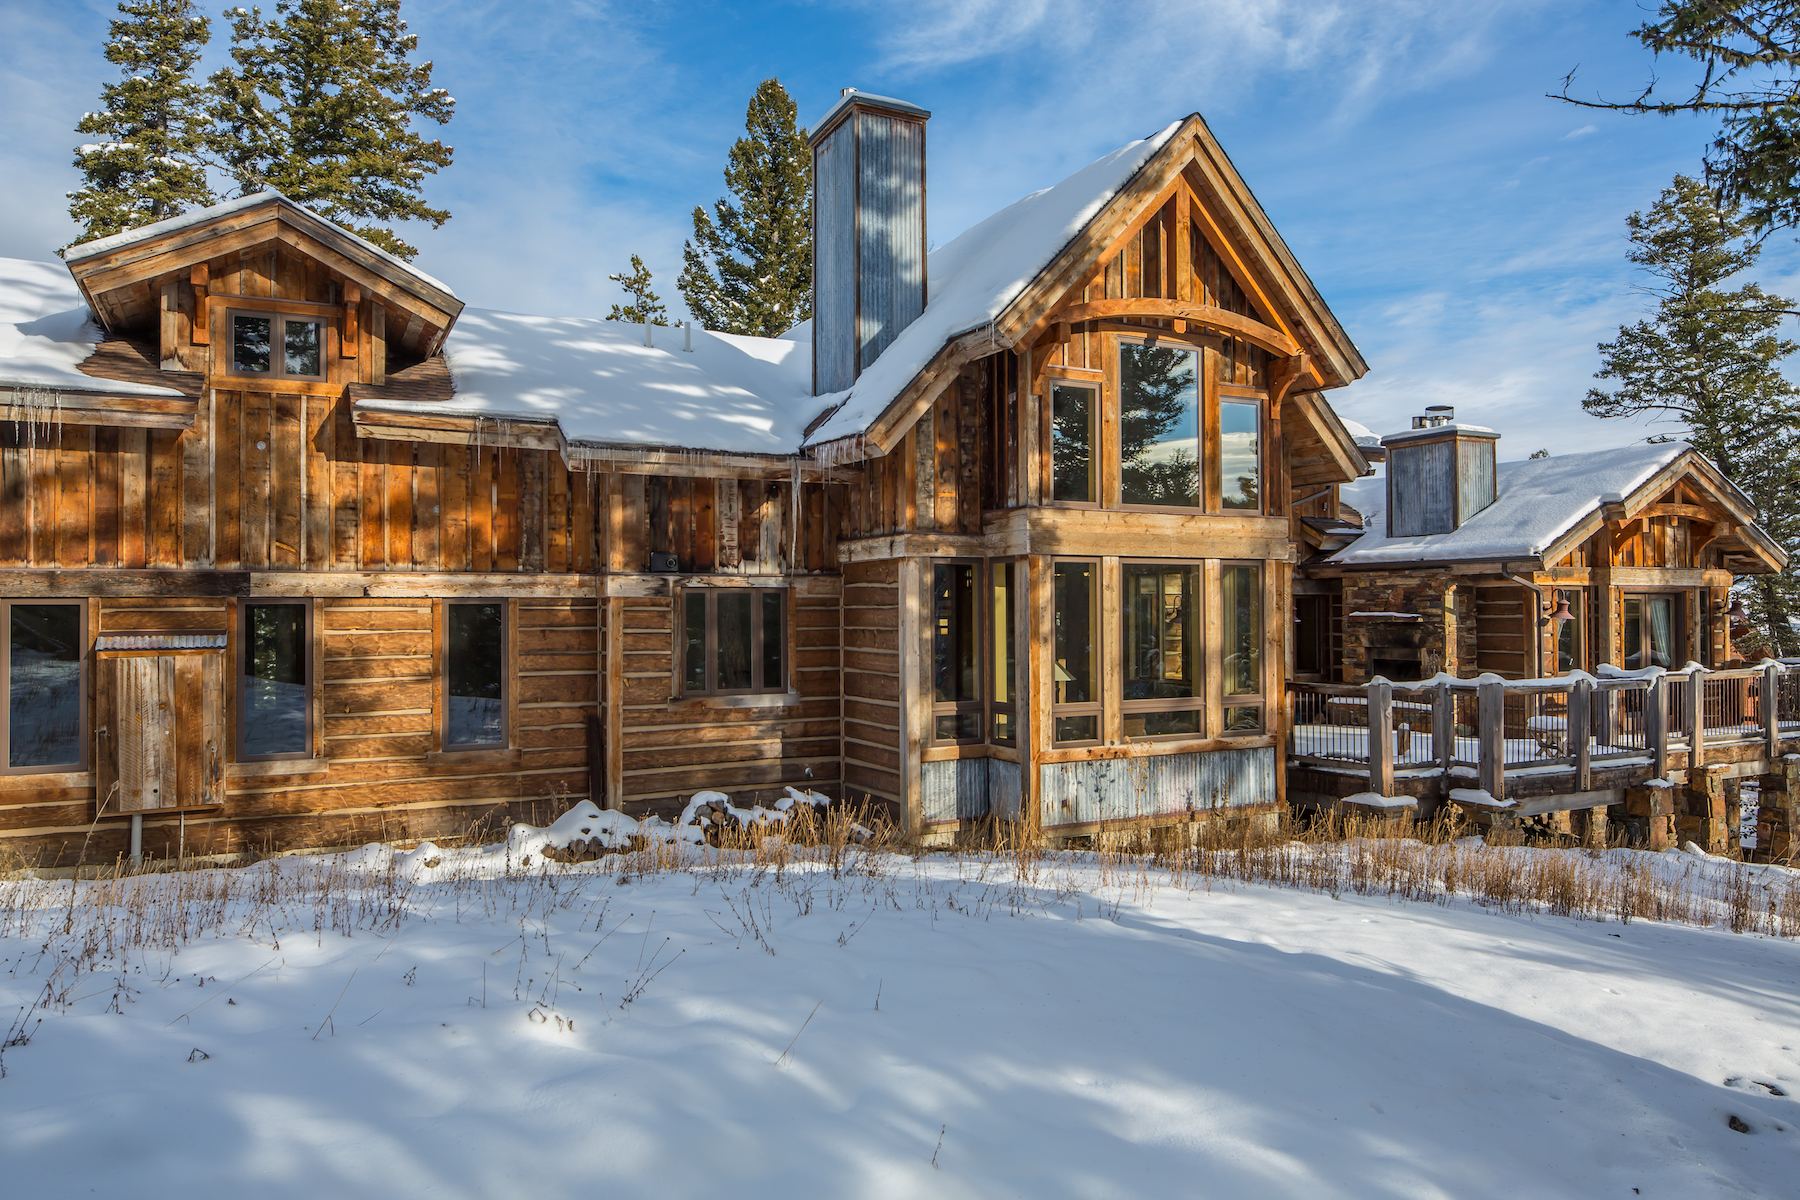 Single Family Homes for Sale at 77 Browtine 77 Browtine Big Sky, Montana 59716 United States